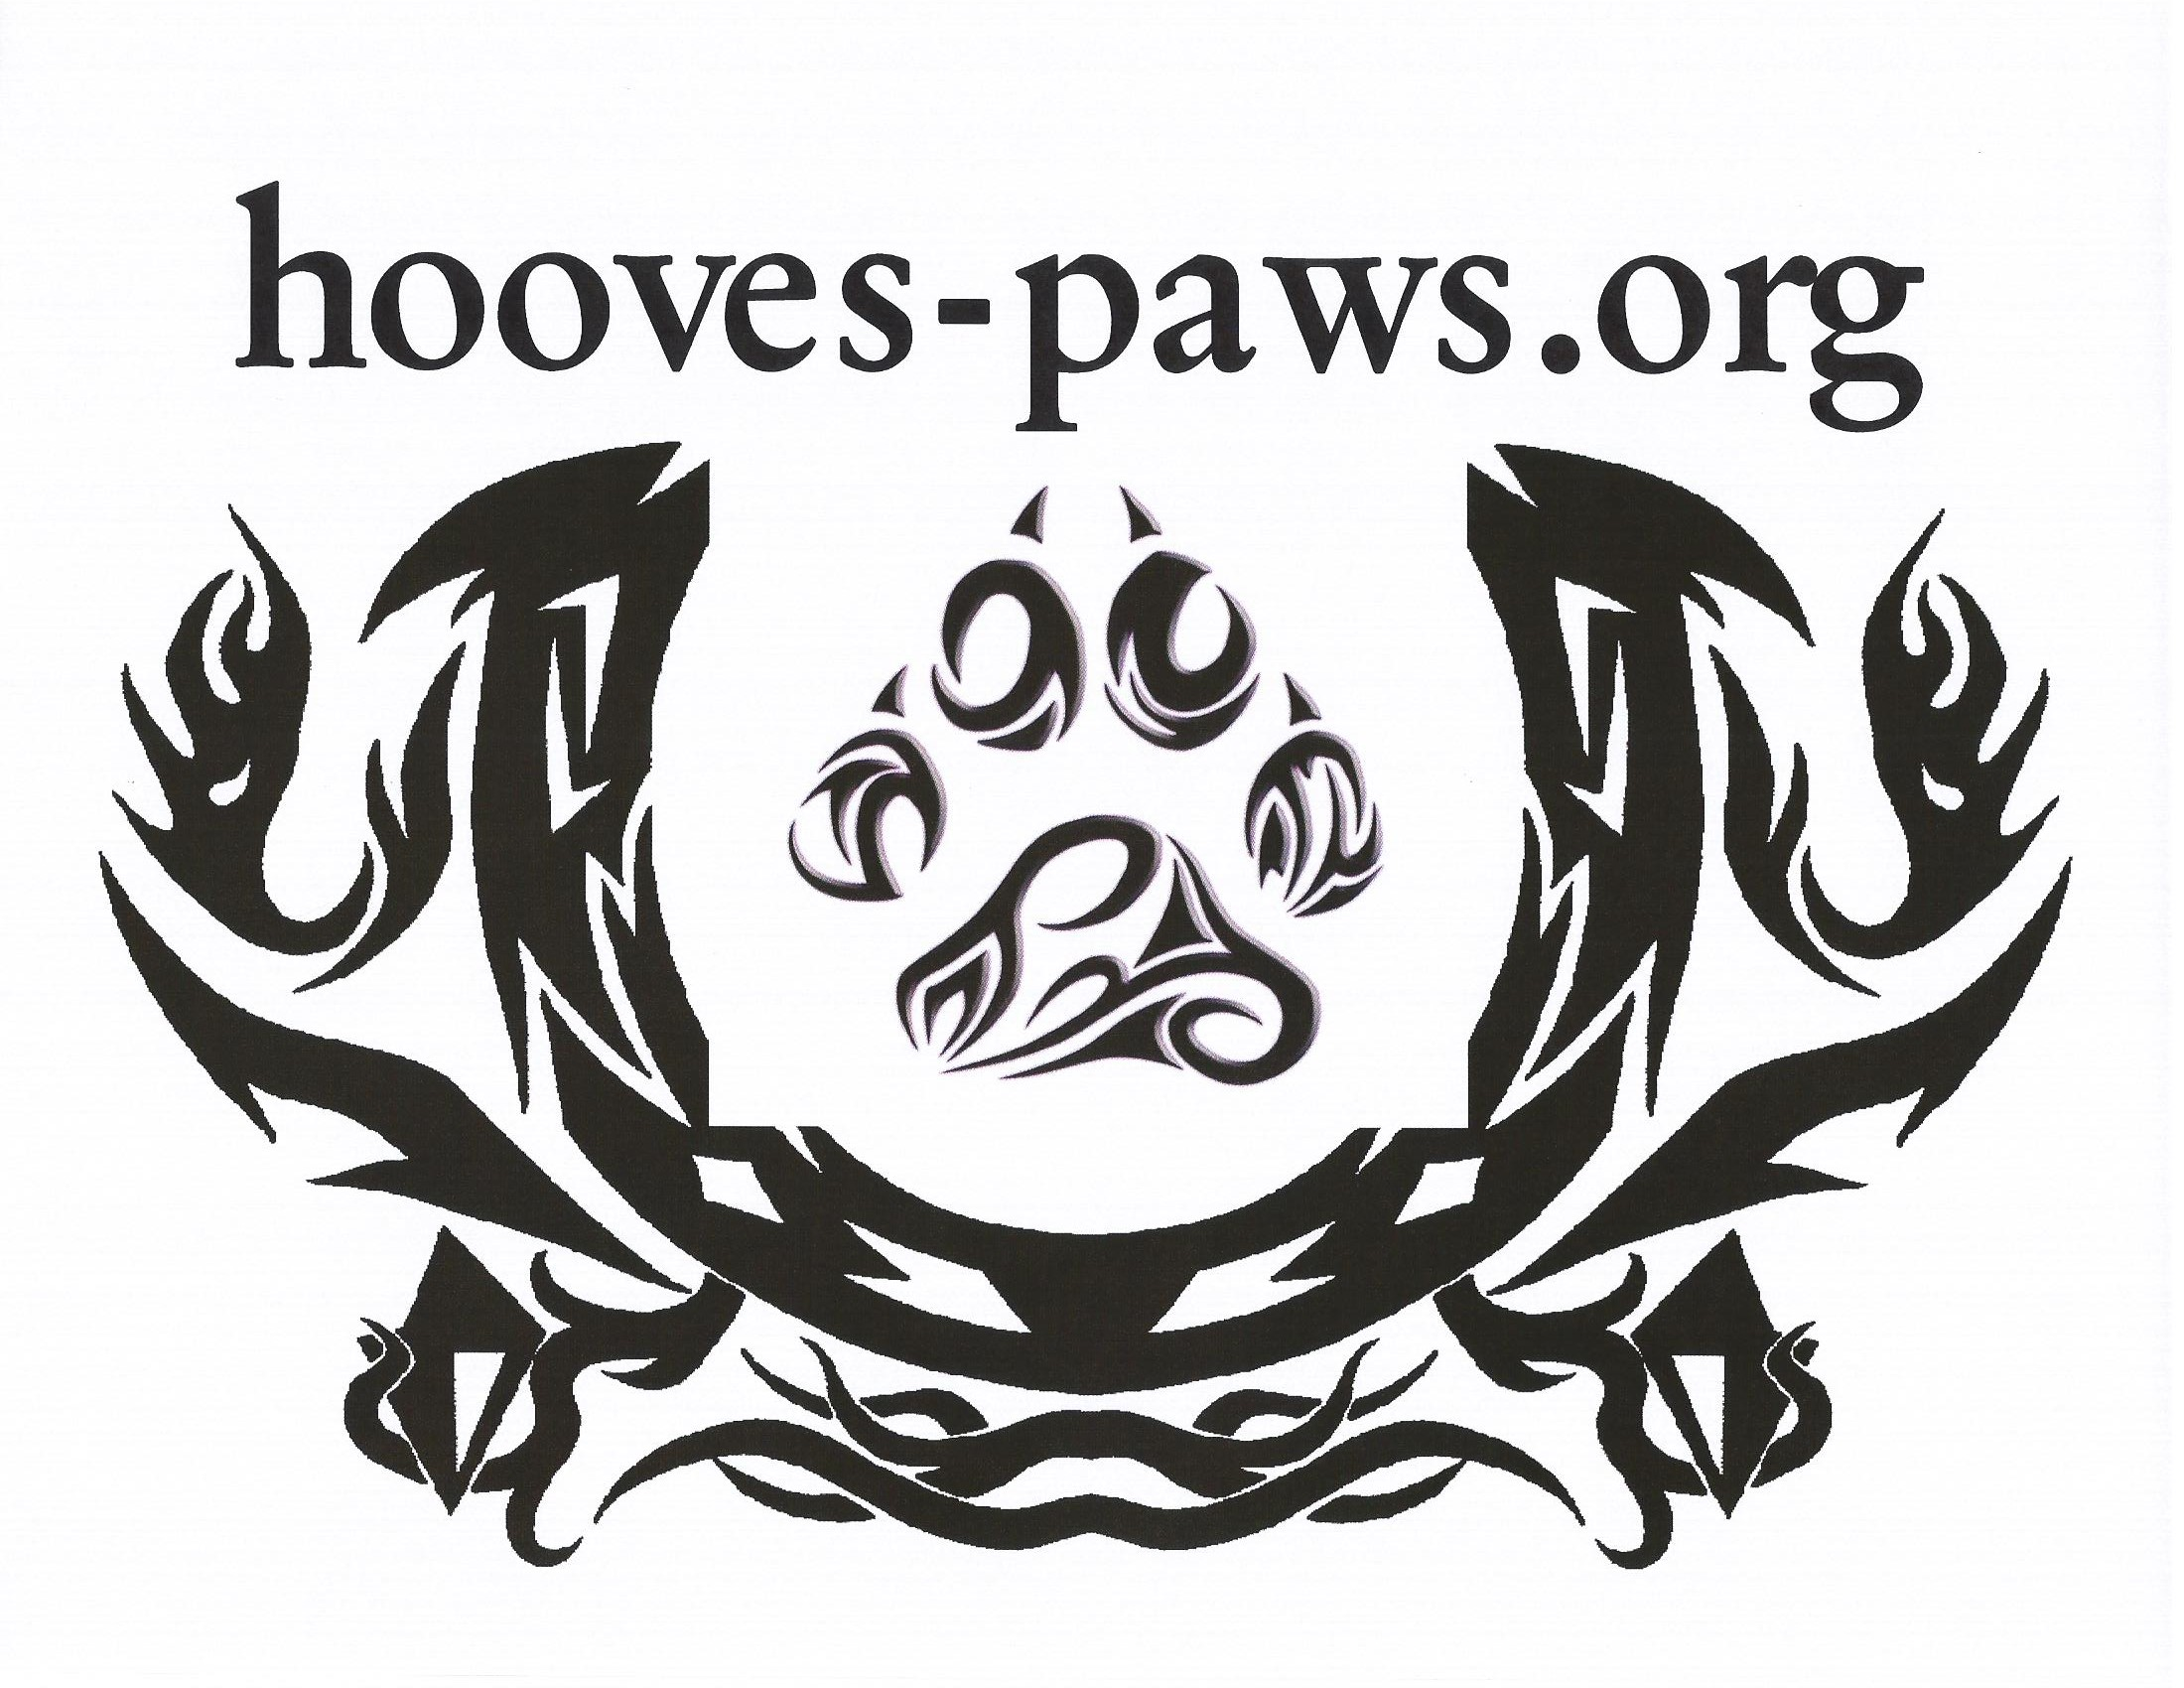 WHISKERS PAWS HOOVES AND CLAWS ANIMAL ADVOCACY | online fundraising websites | crowdfunding